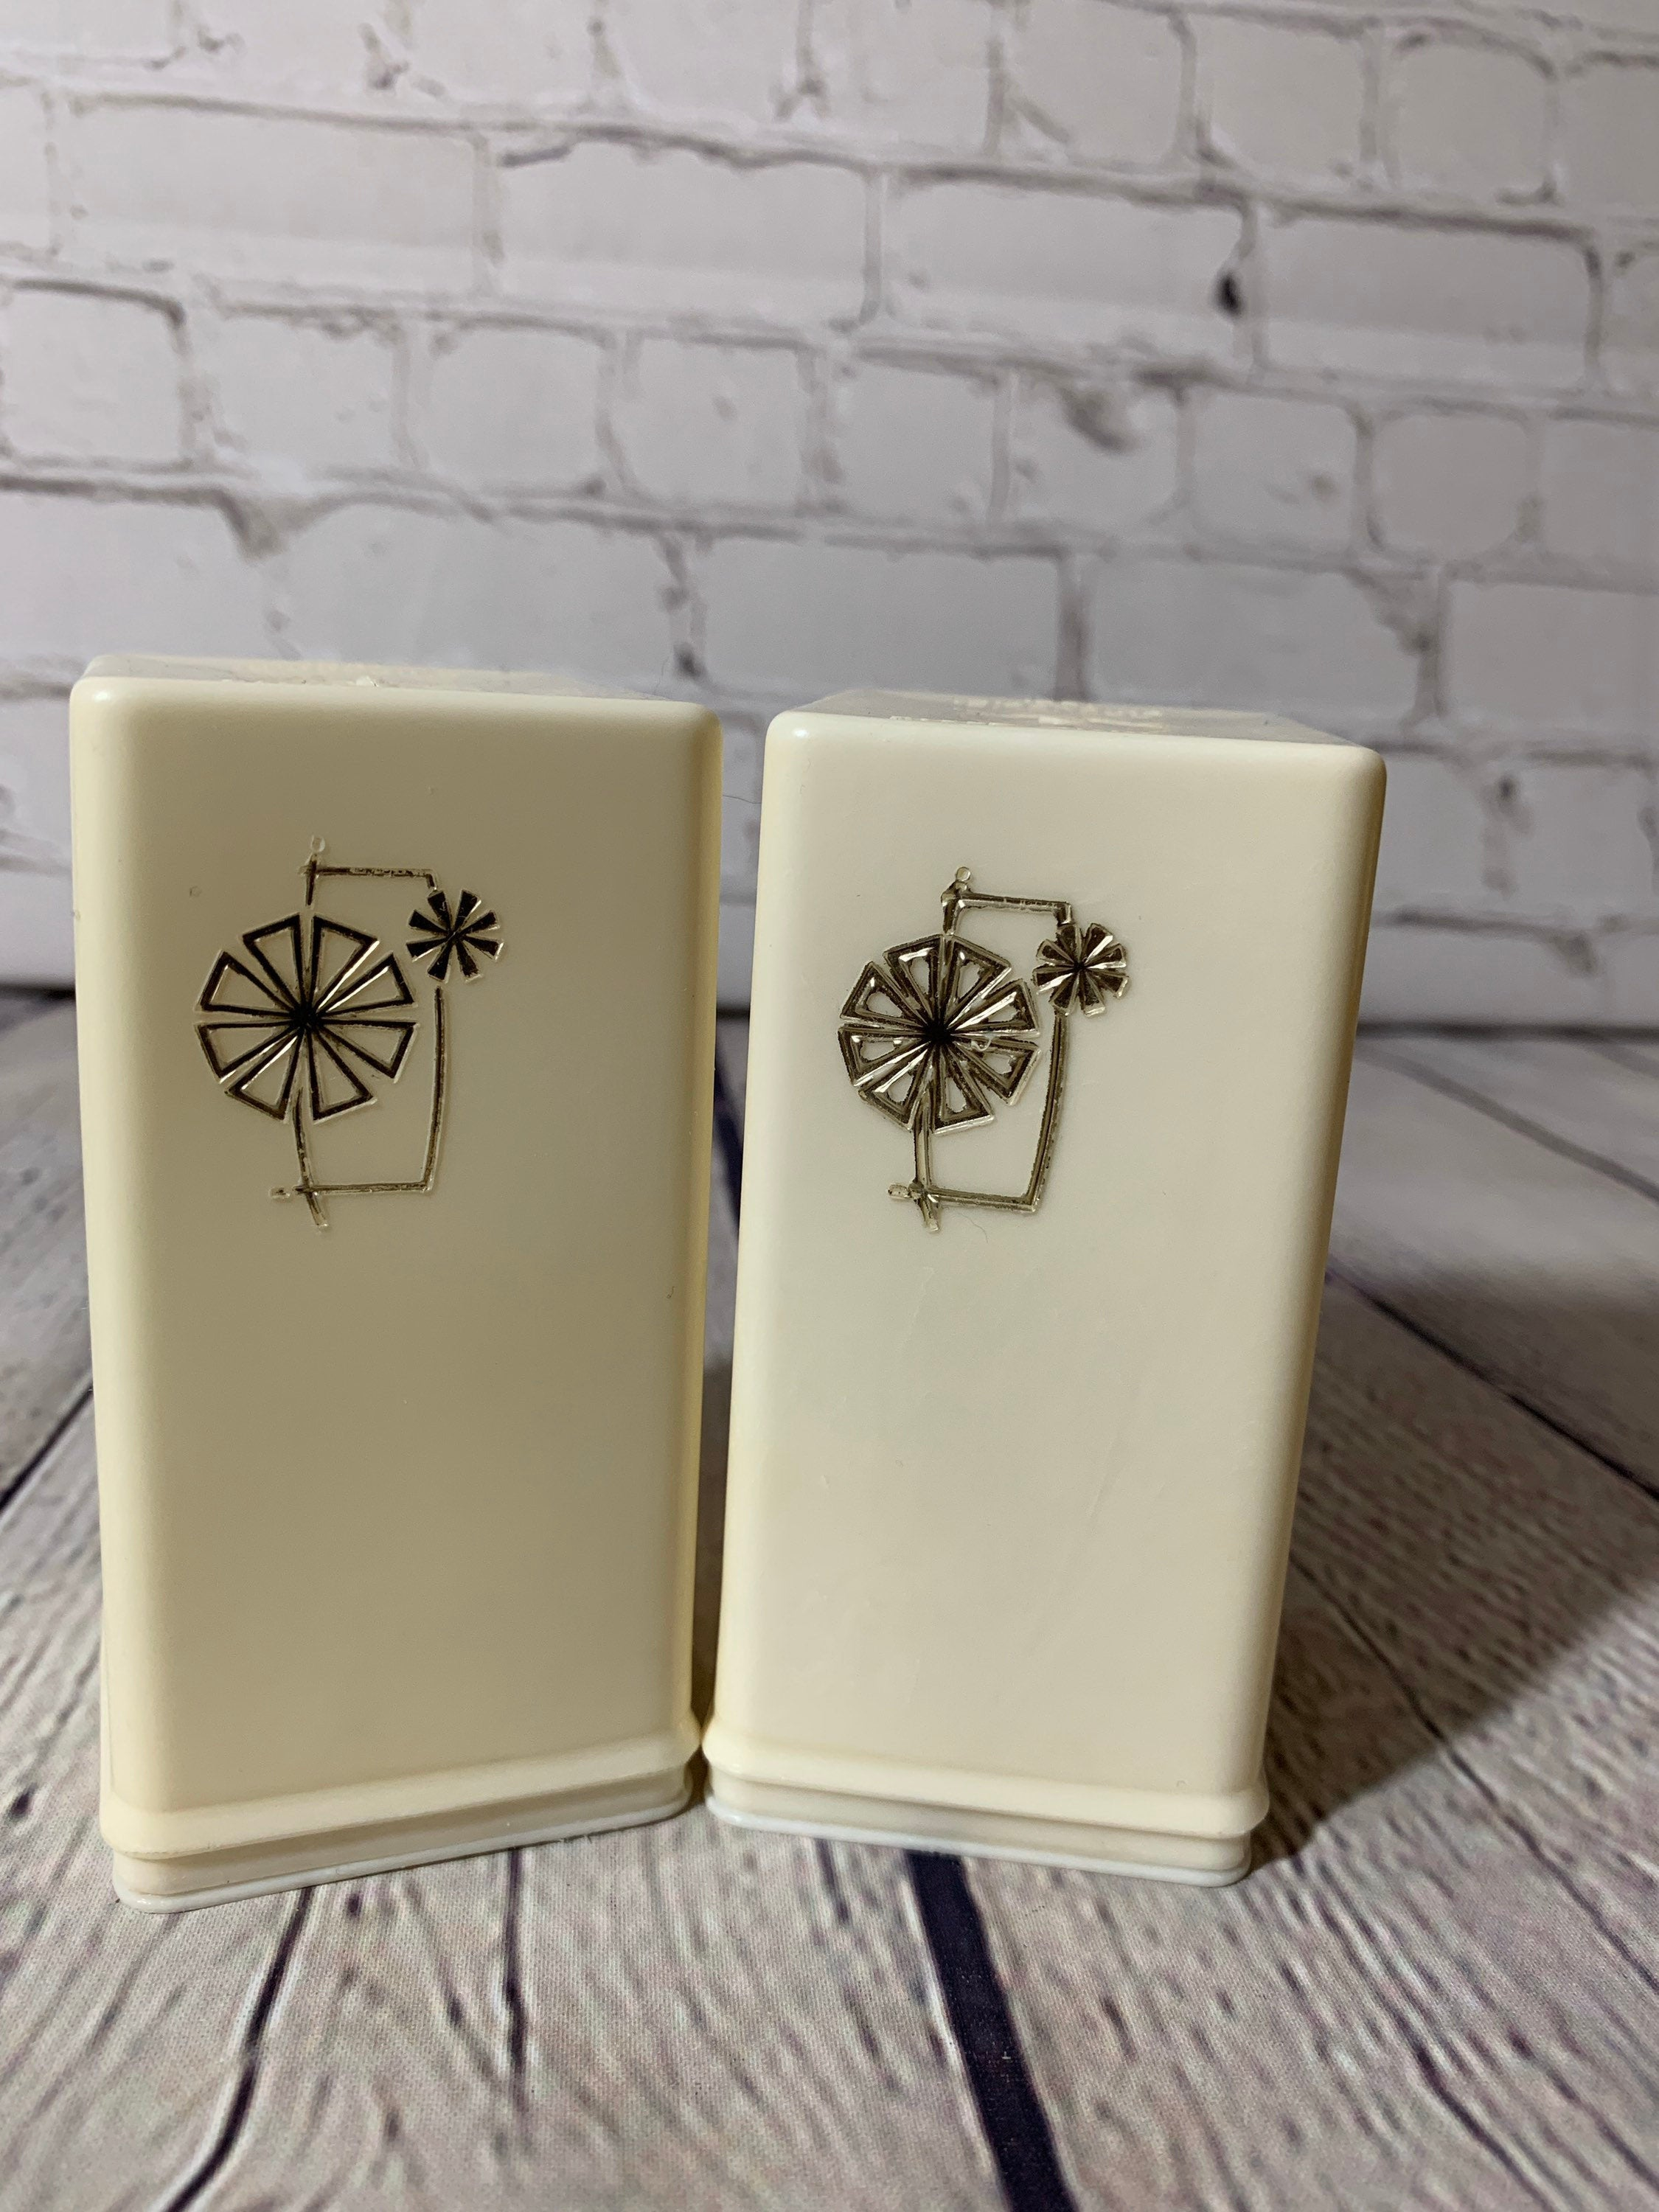 Vintage MCM/Retro Large Golden Crest Cream Color Plastic Salt & Pepper Shakers- 1960's